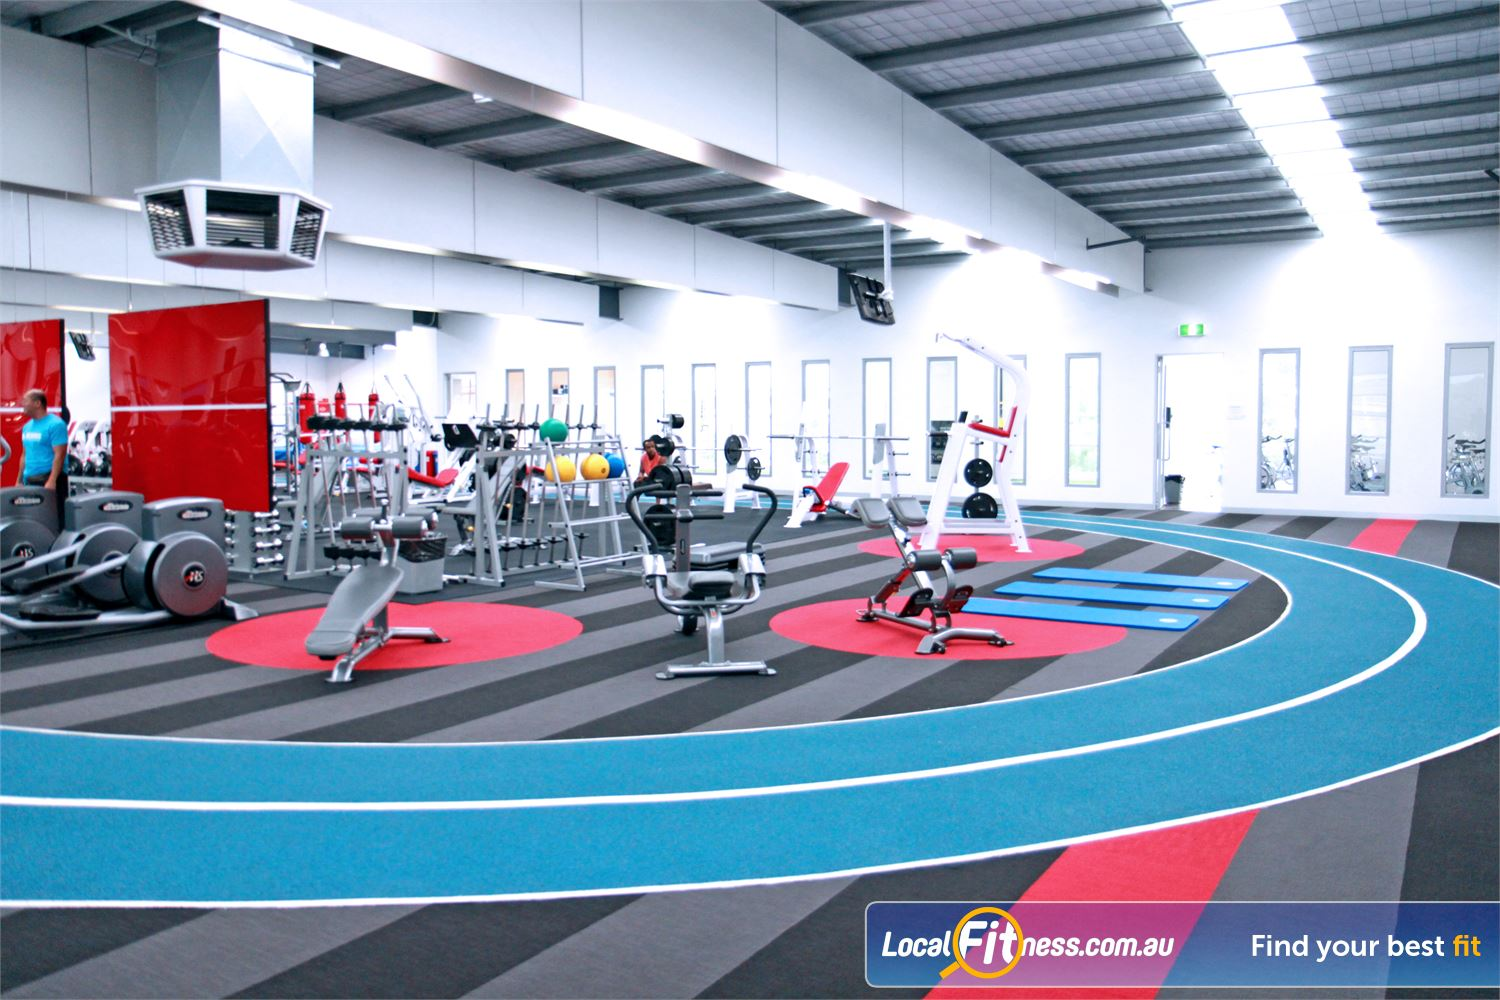 Genesis Fitness Clubs Maidstone 120 m indoor running track circling the entire Maidstone gym floor.